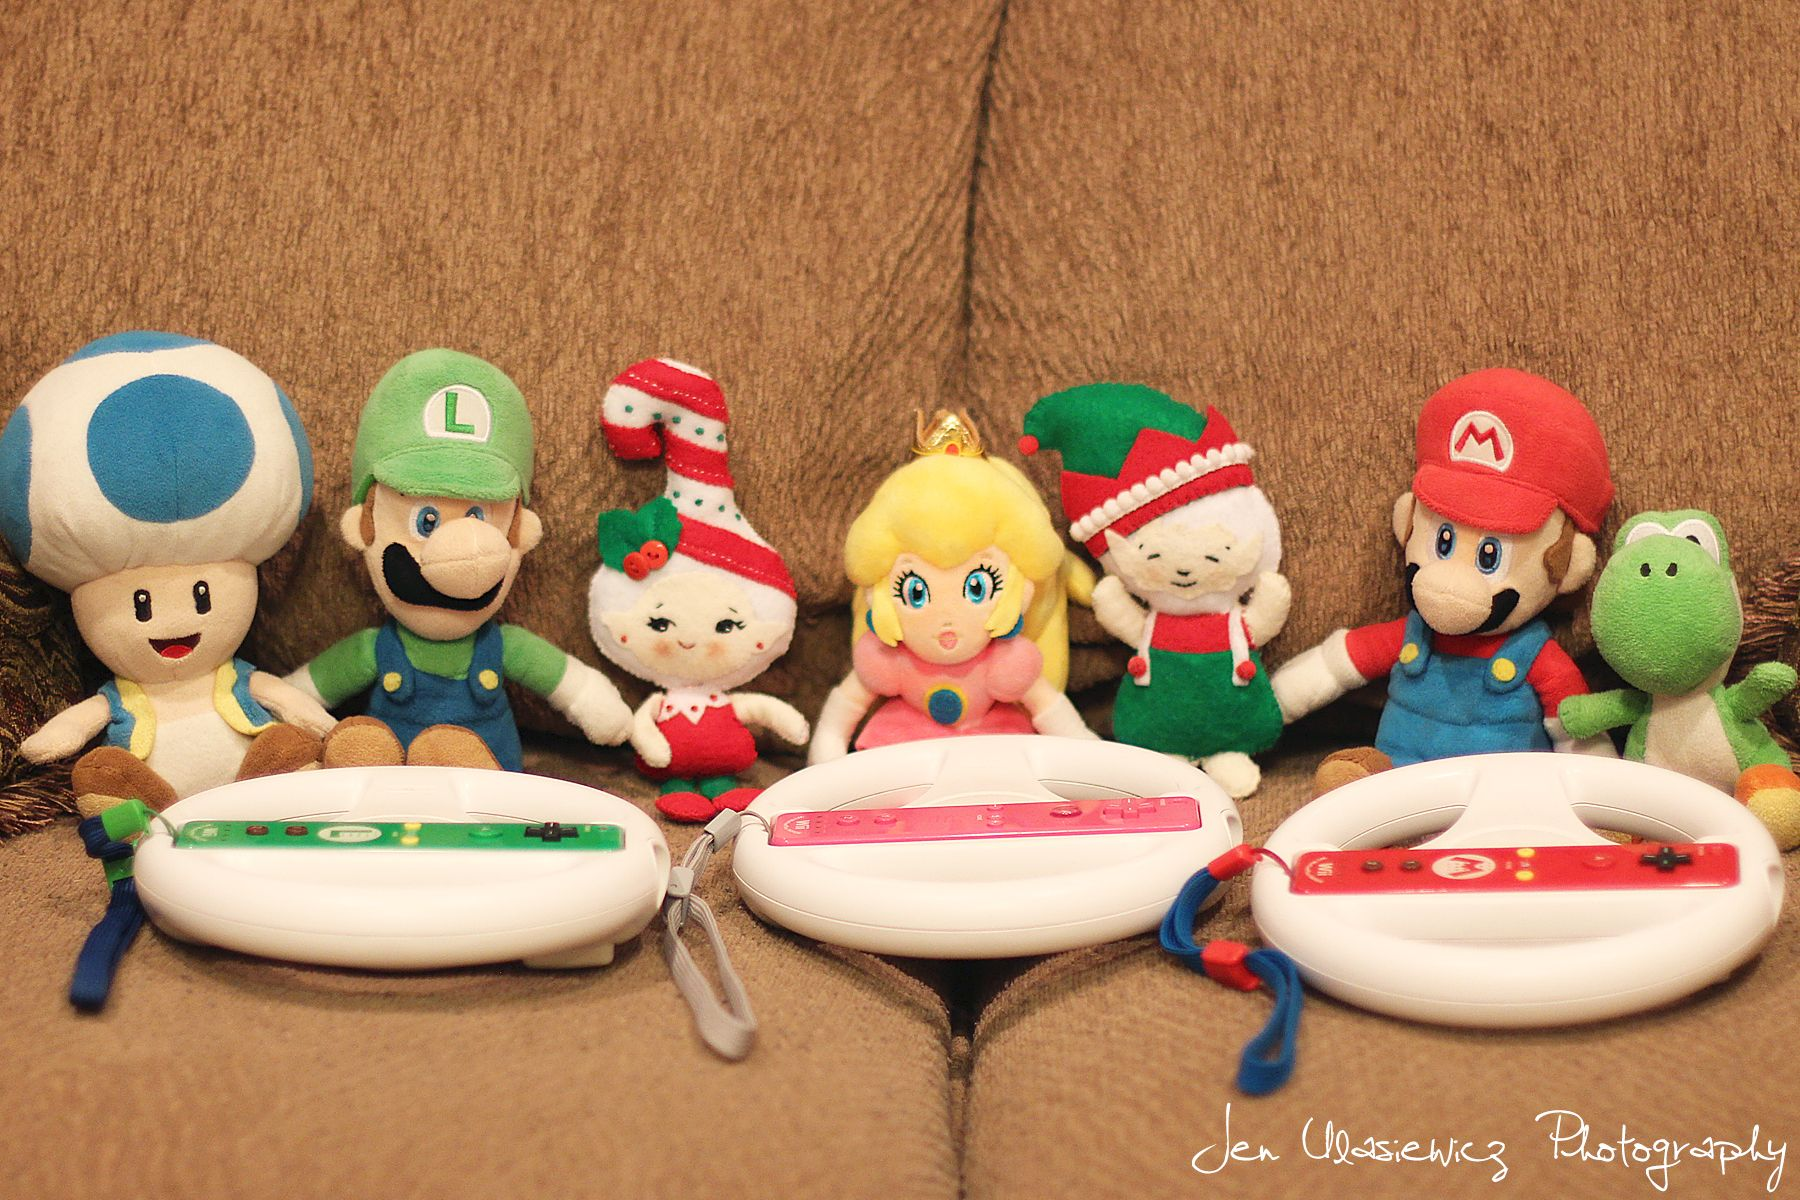 Cool Fiona And Jingle Have Gathered Up Mario And His